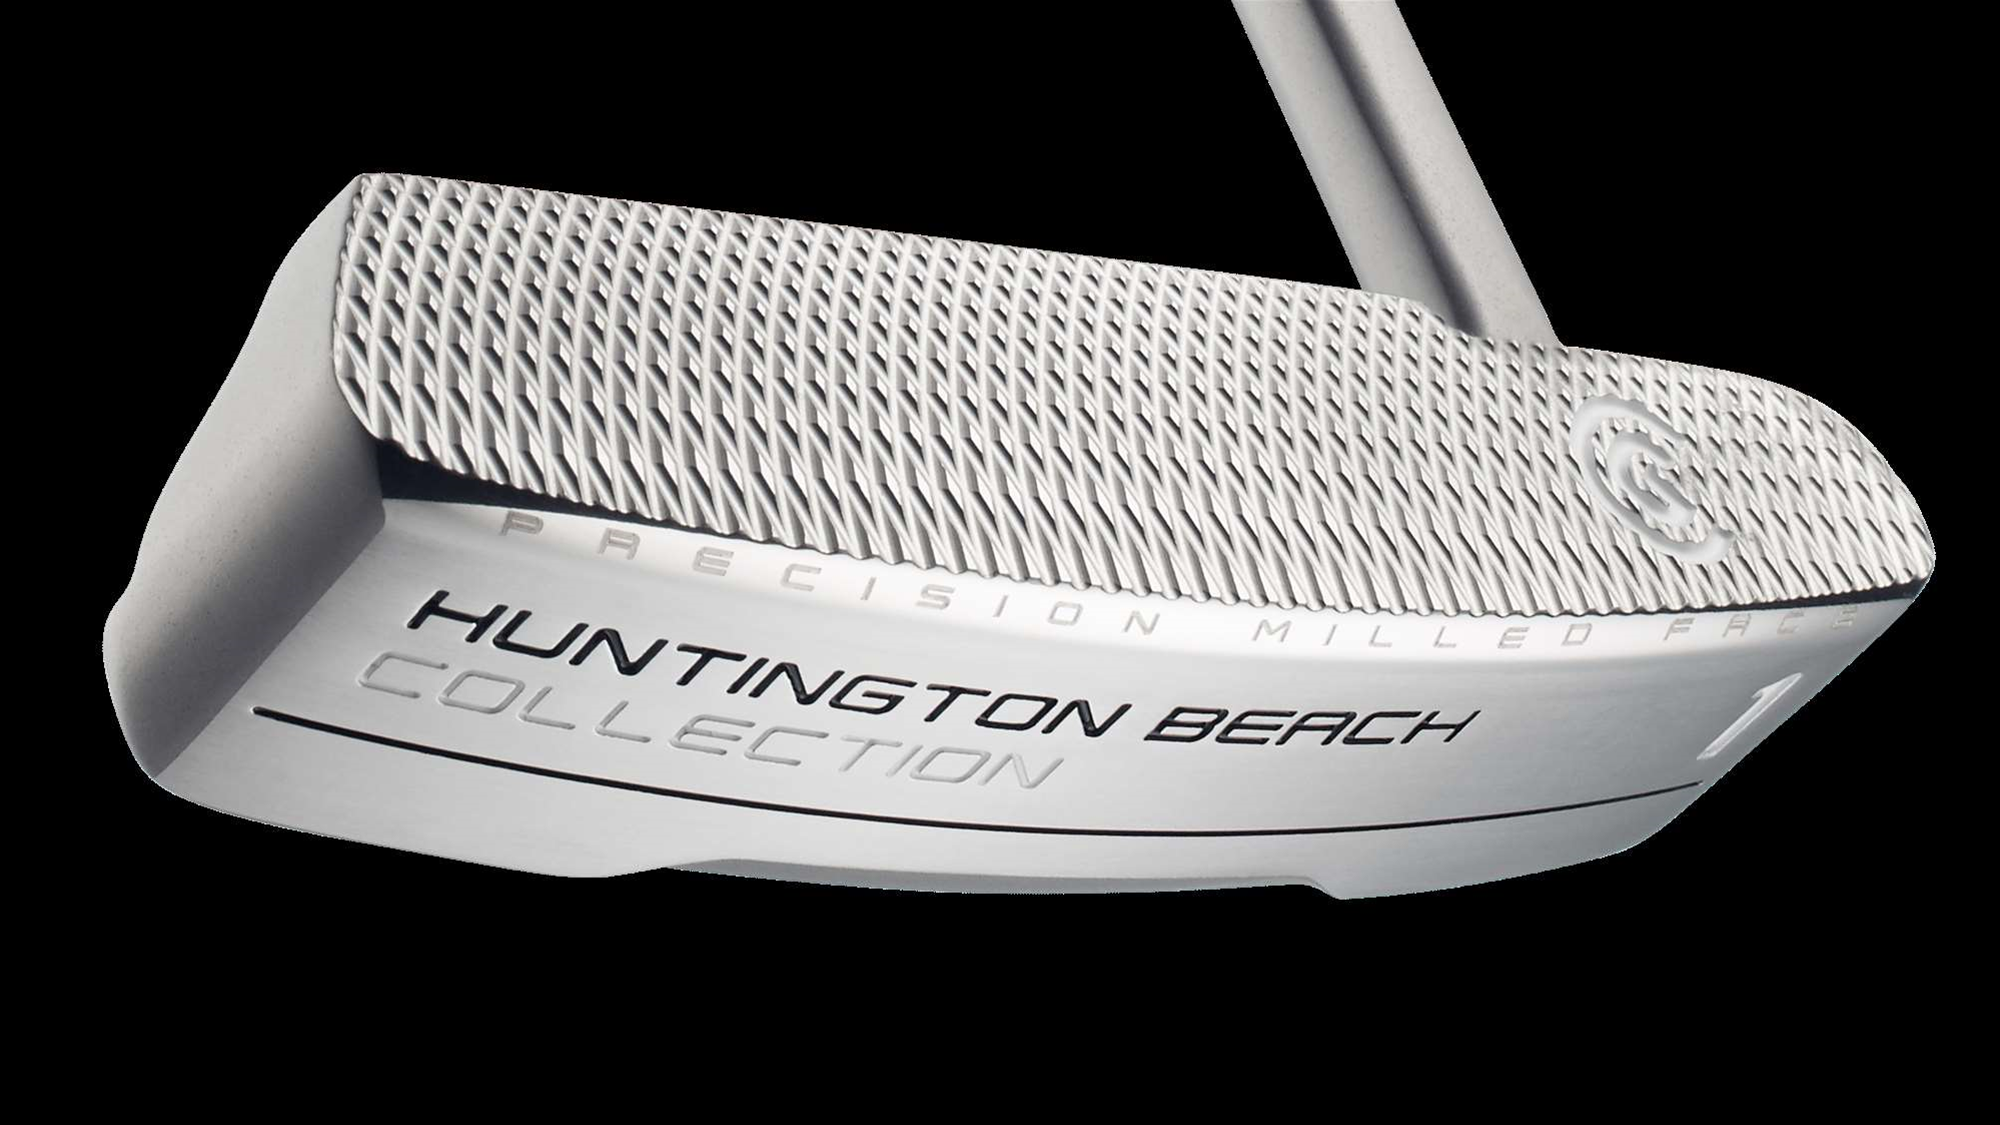 NEW GEAR: Cleveland Golf's hi-tech putters